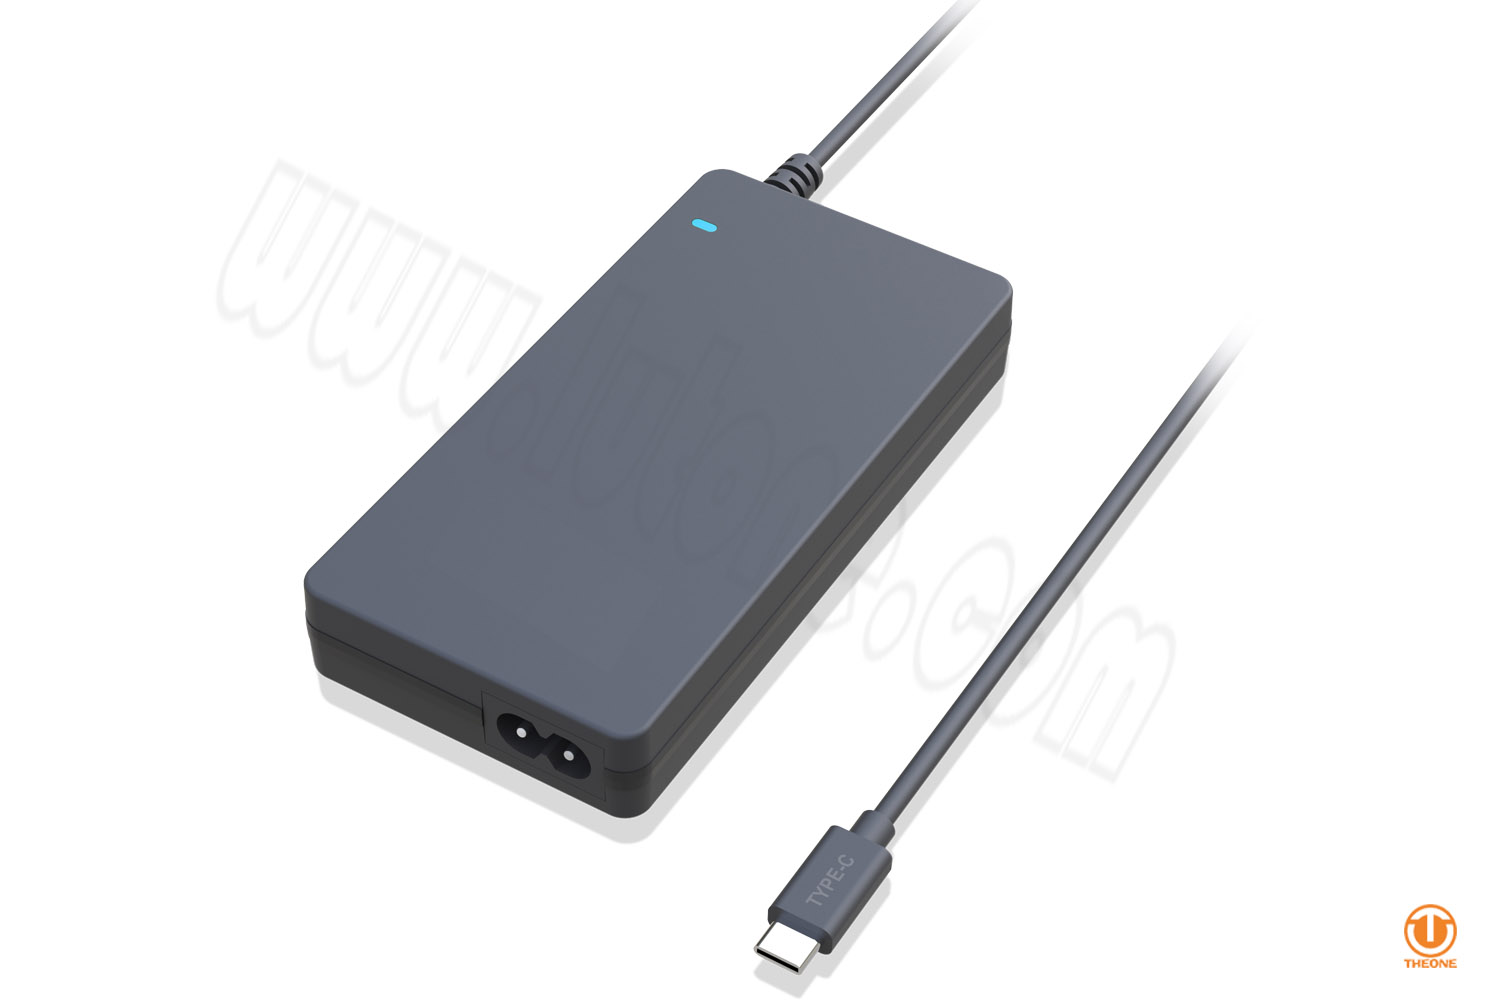 ta09b4-pd-2 usb-c power delivery charger